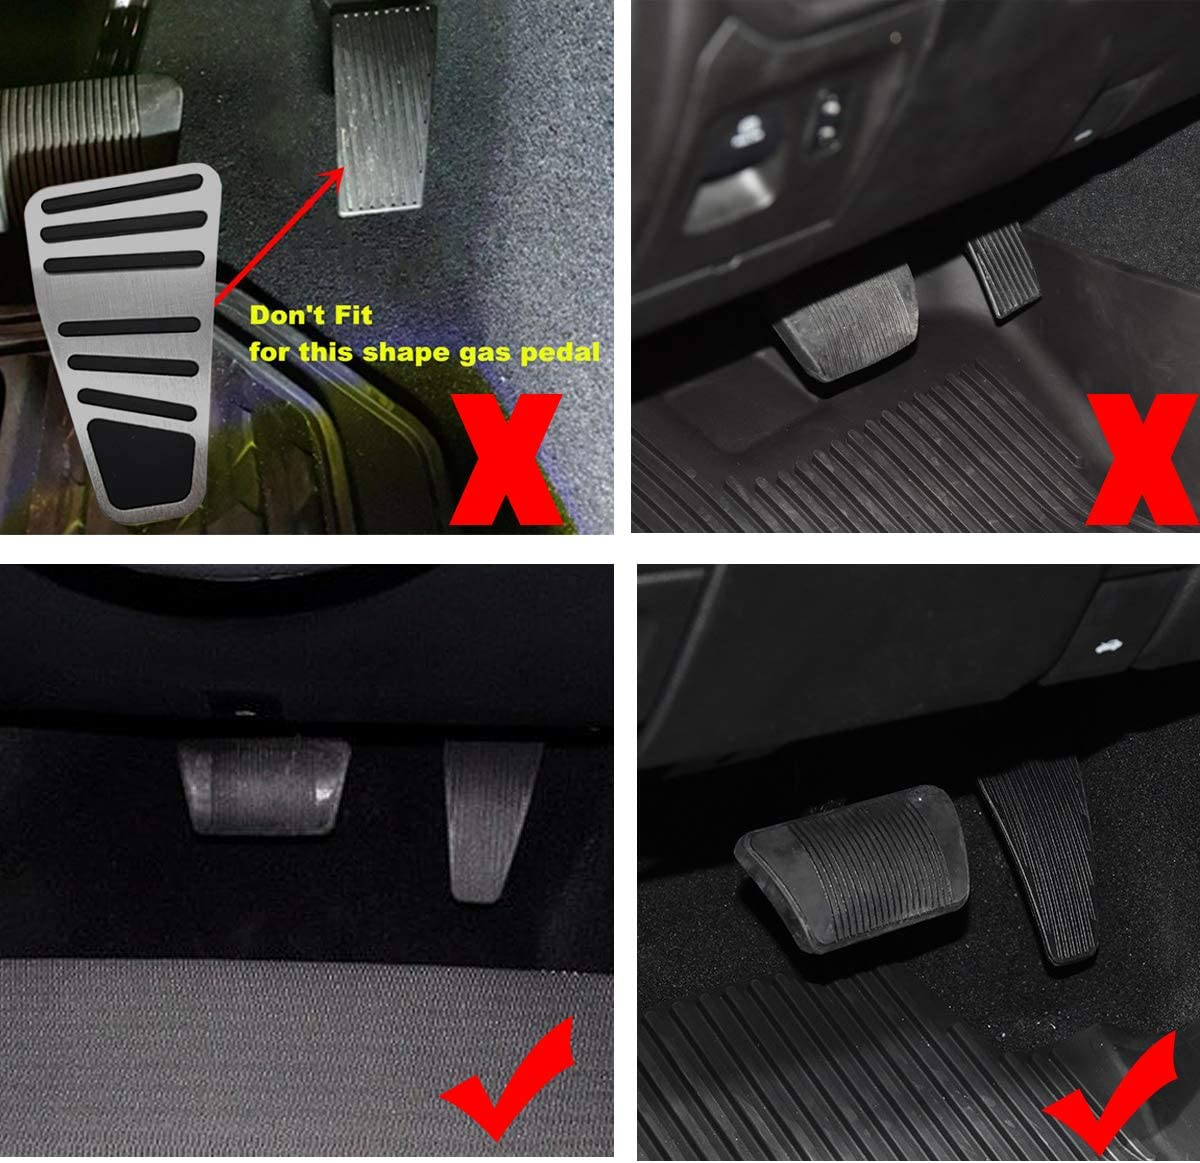 Automatic Transmission Only,3PCS Jaronx No-Drill Pedal Covers for Dodge Ram 1500 2500 3500 2011-2018,Aluminum Alloy Anti-Slip Gas Pedal Cover Break Pedal Pad Gas Fuel Accelerator Pedal Covers